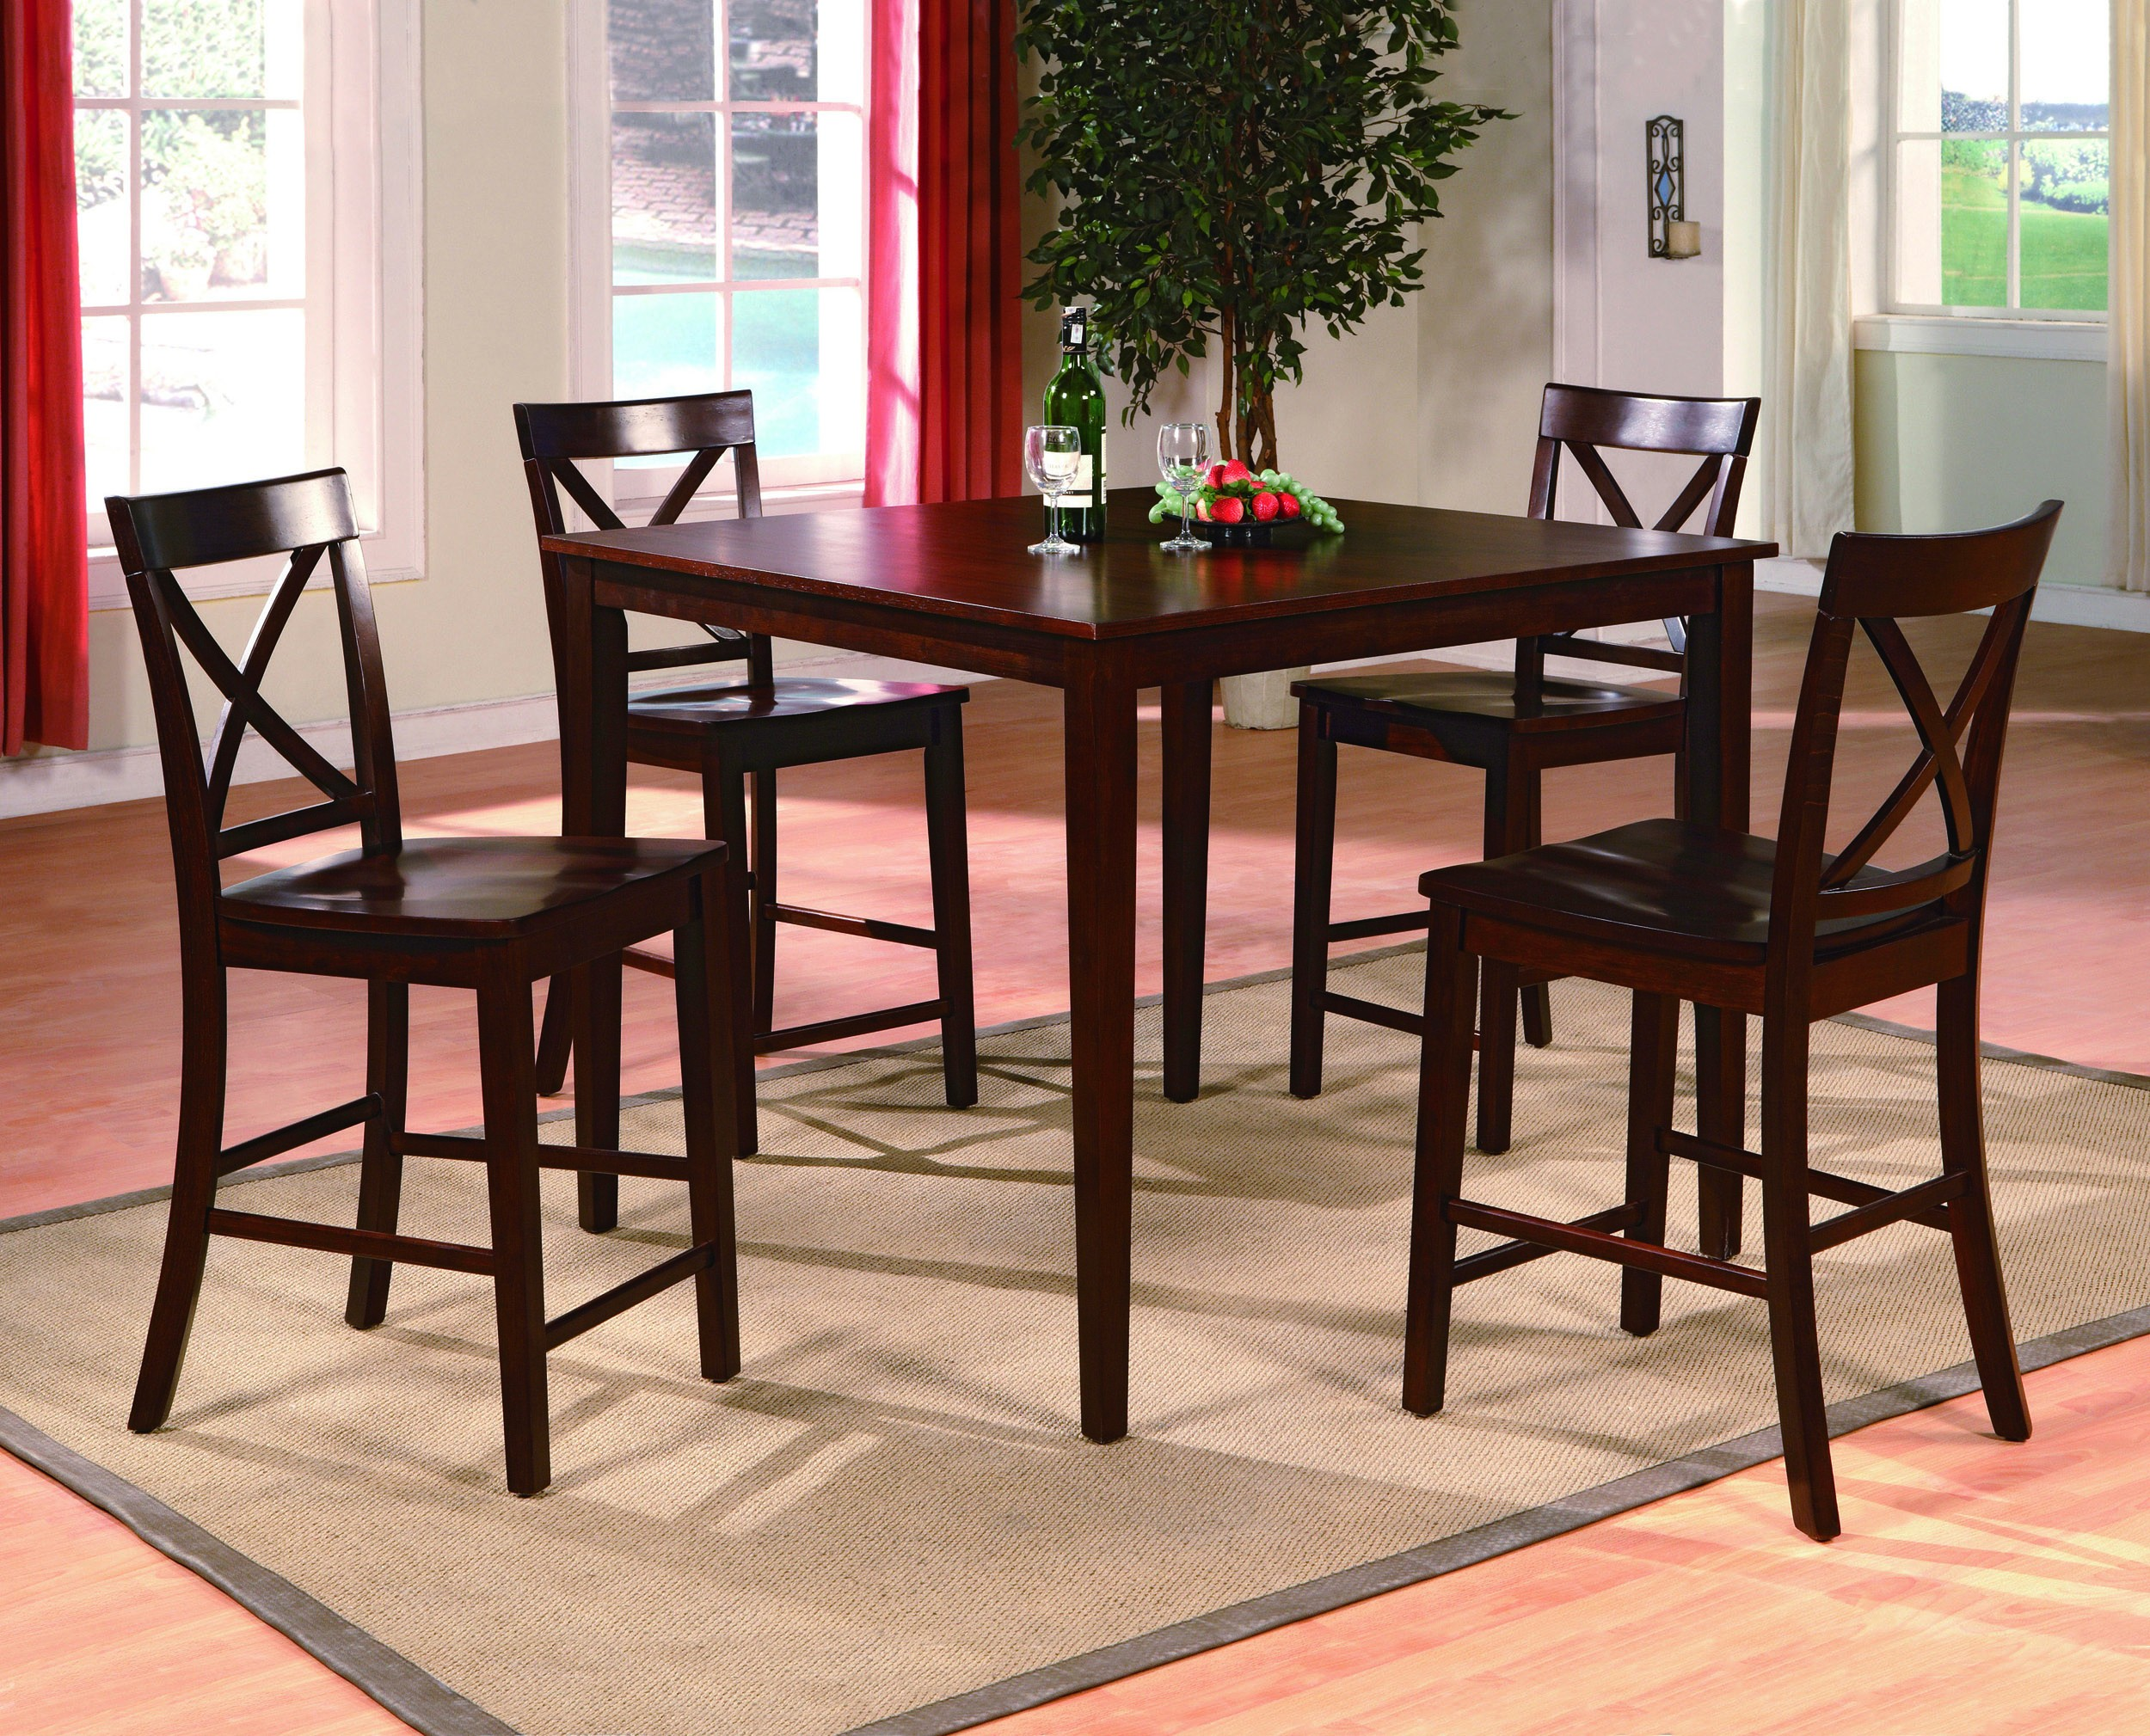 Contemporary Style 5pc Counter Height Table W 4 Side Chairs X Back Design Dining Room Furniture